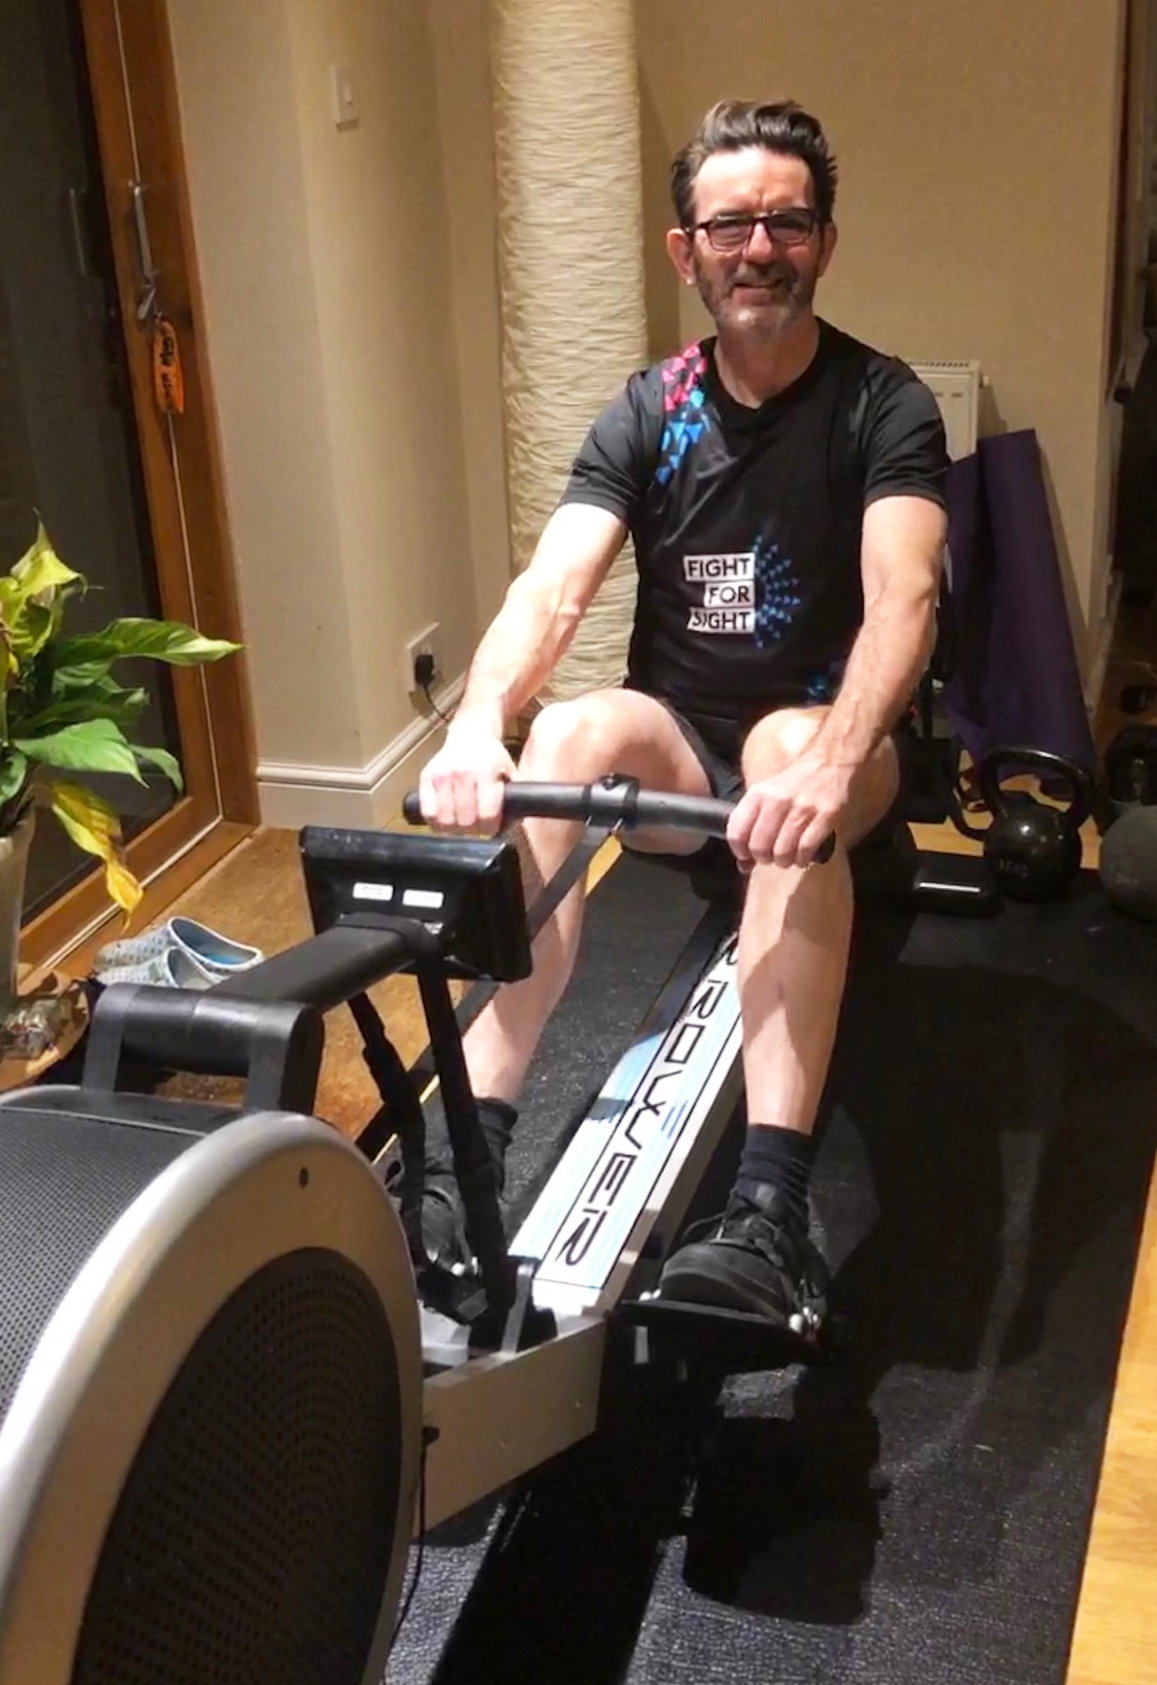 A man wearing a Fight for Sight running vest, on a rowing machine in his home.